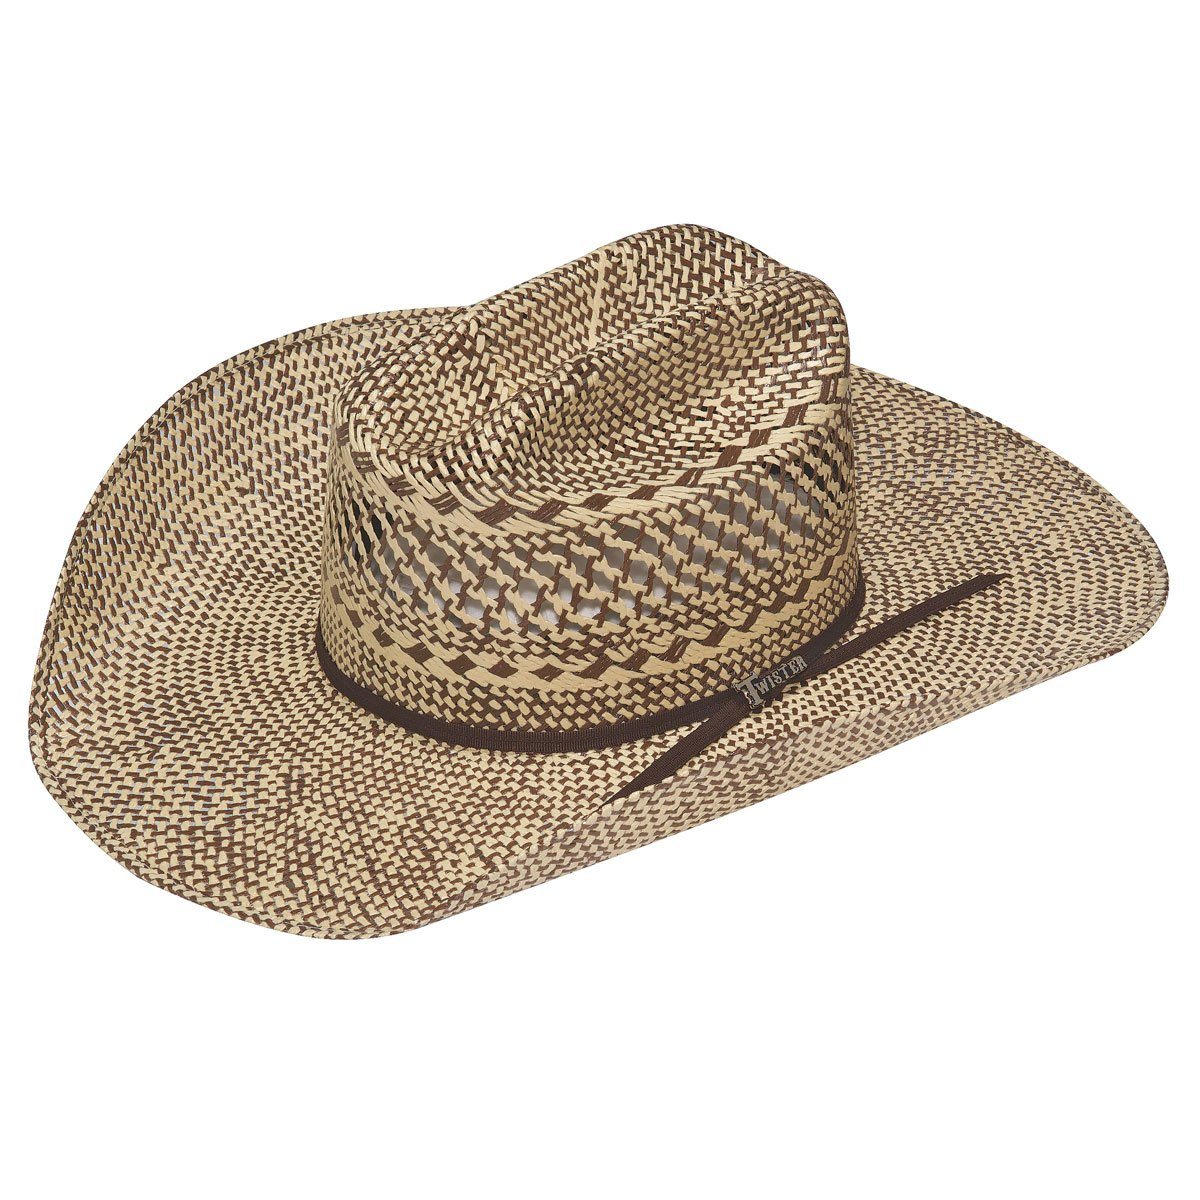 CHOCOLATE WEAVE TWISTER STRAW HAT